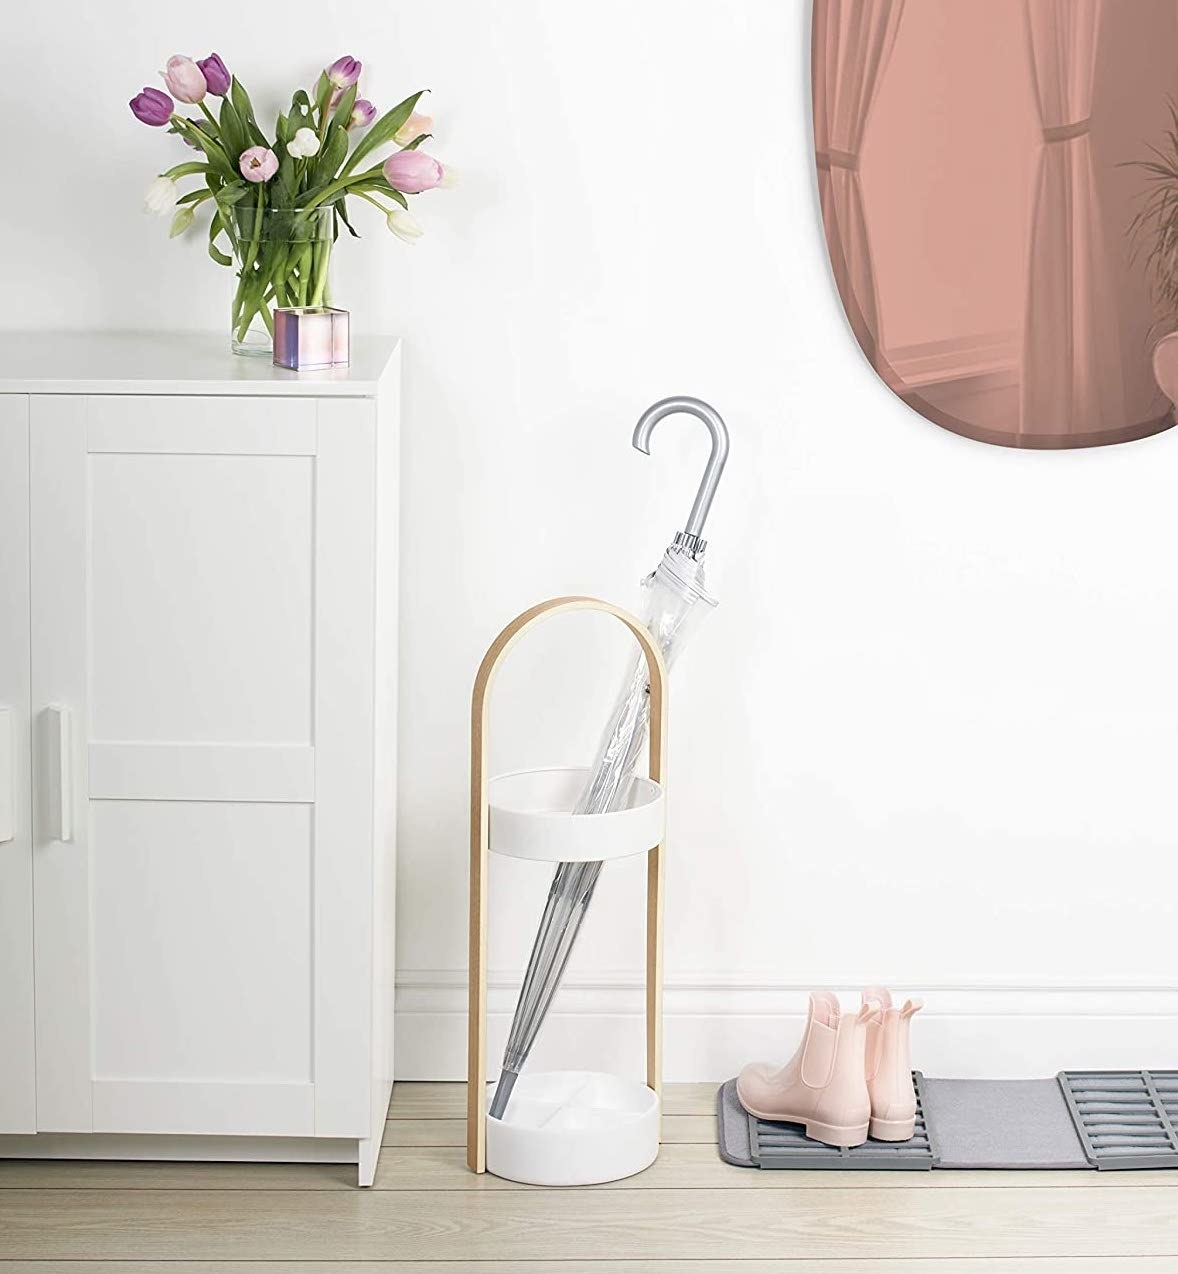 The umbrella stand in a neatly arranged entryway with a clear umbrella inside